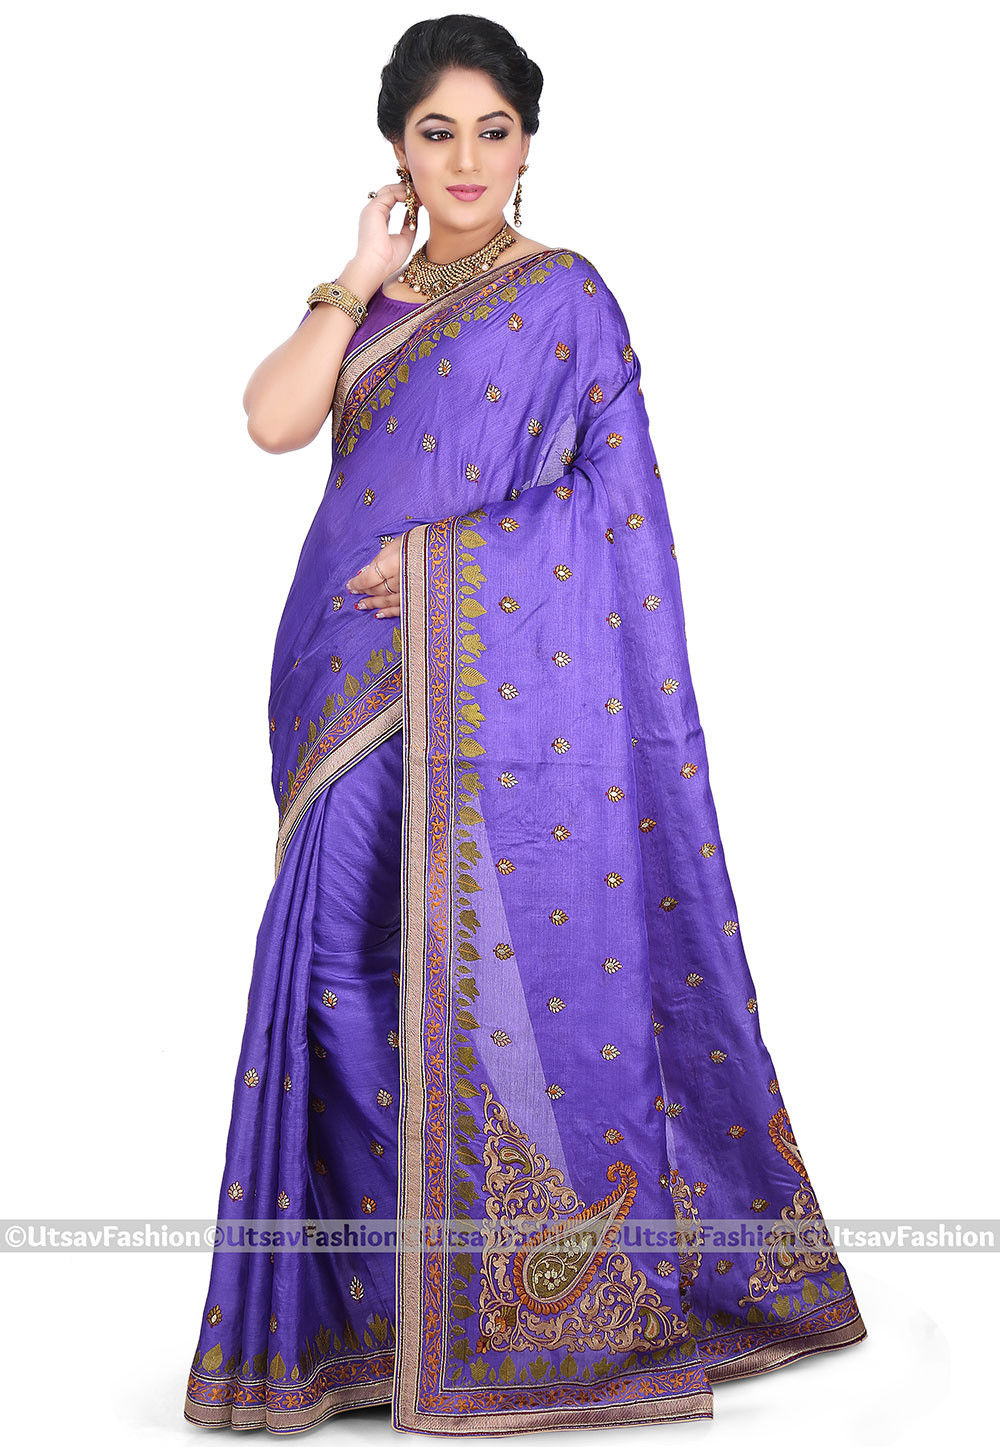 Embroidered Pure Tussar Silk Saree in Purple